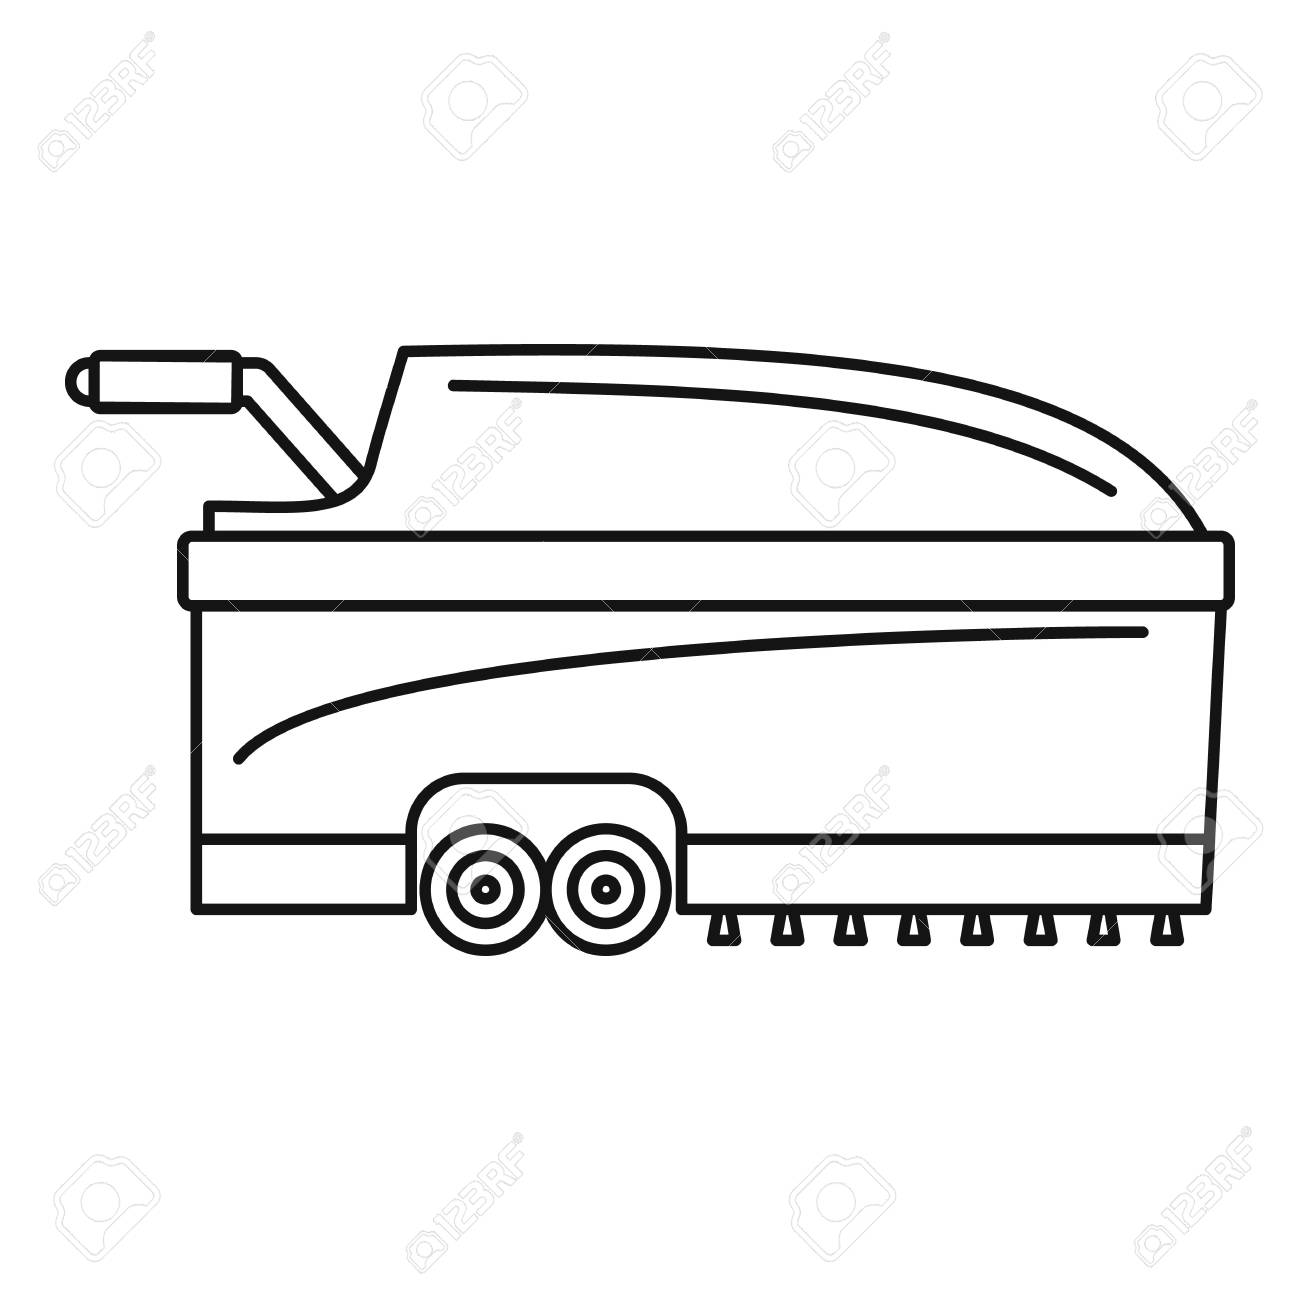 Hall vacuum cleaner icon. Outline hall vacuum cleaner vector icon for web design isolated on white background - 112307900